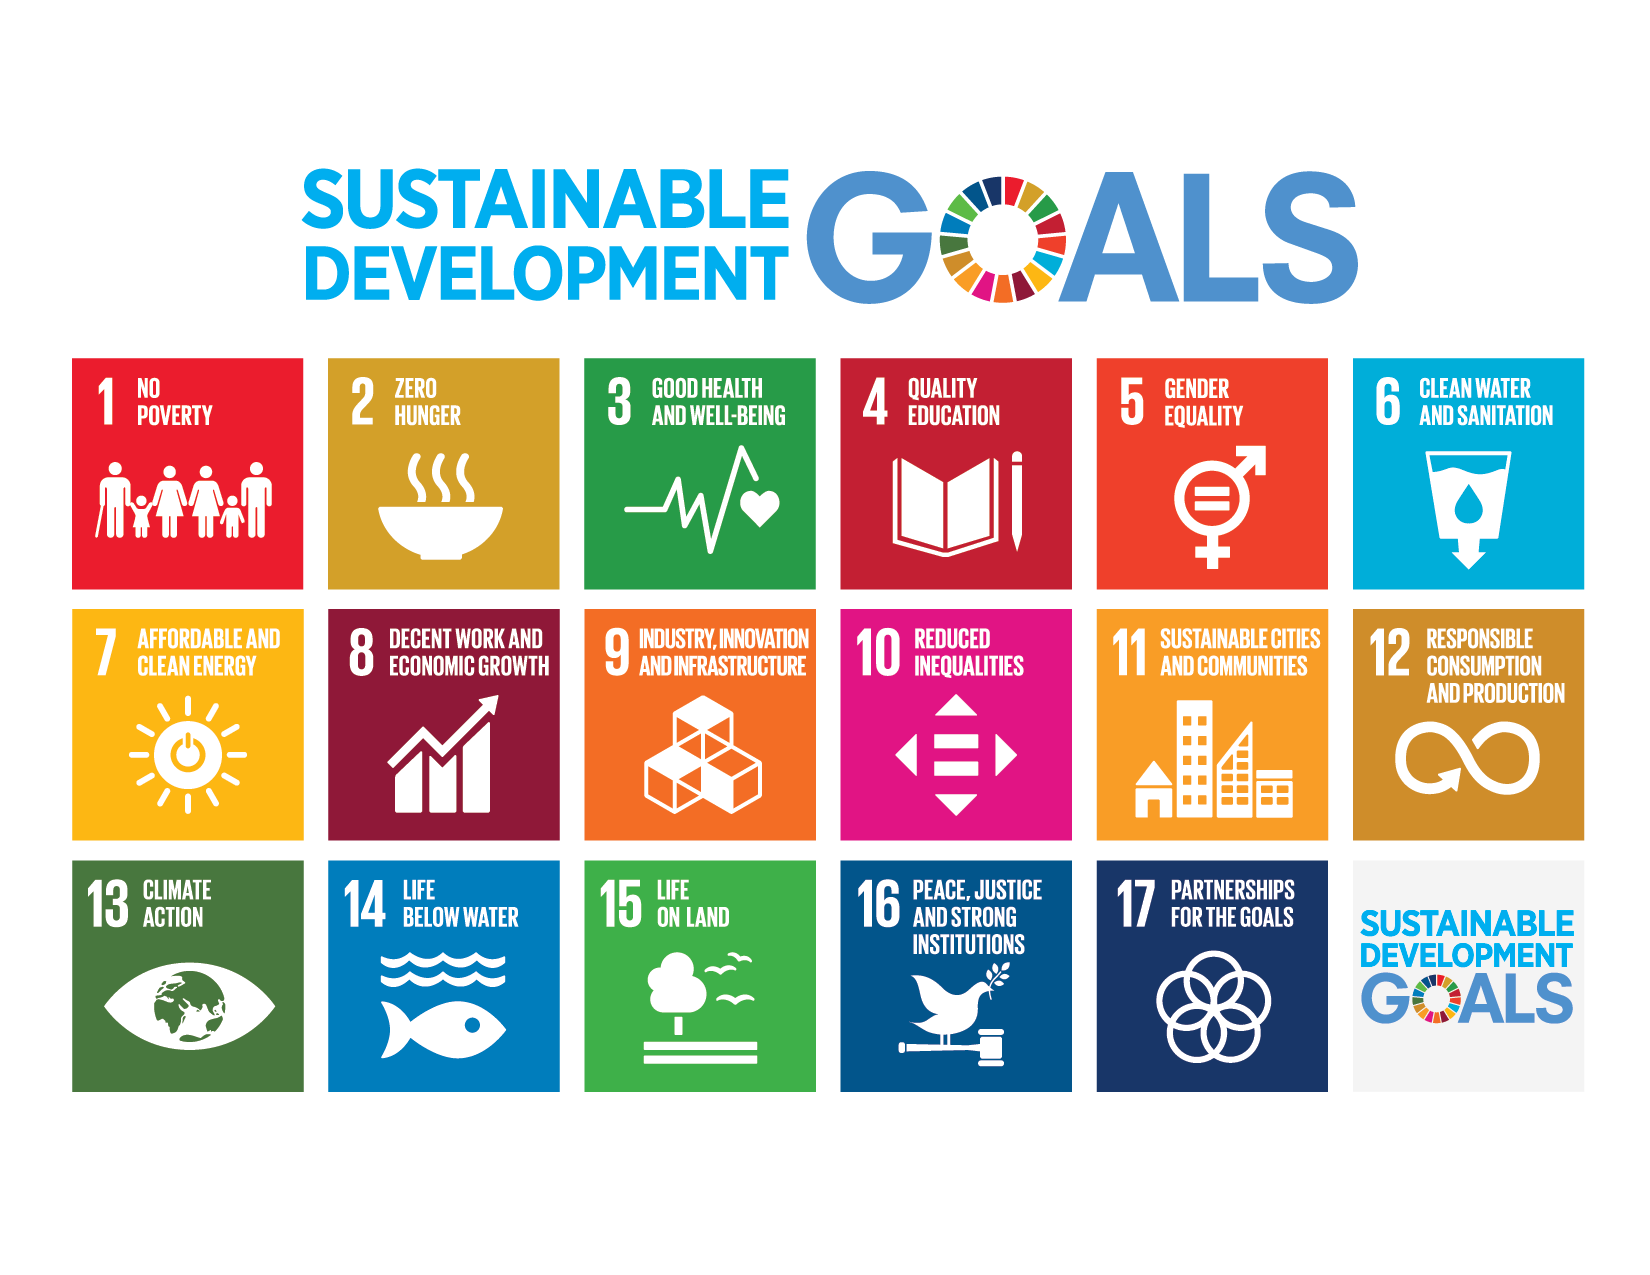 Sustainable Development Goals - Engaging Regions